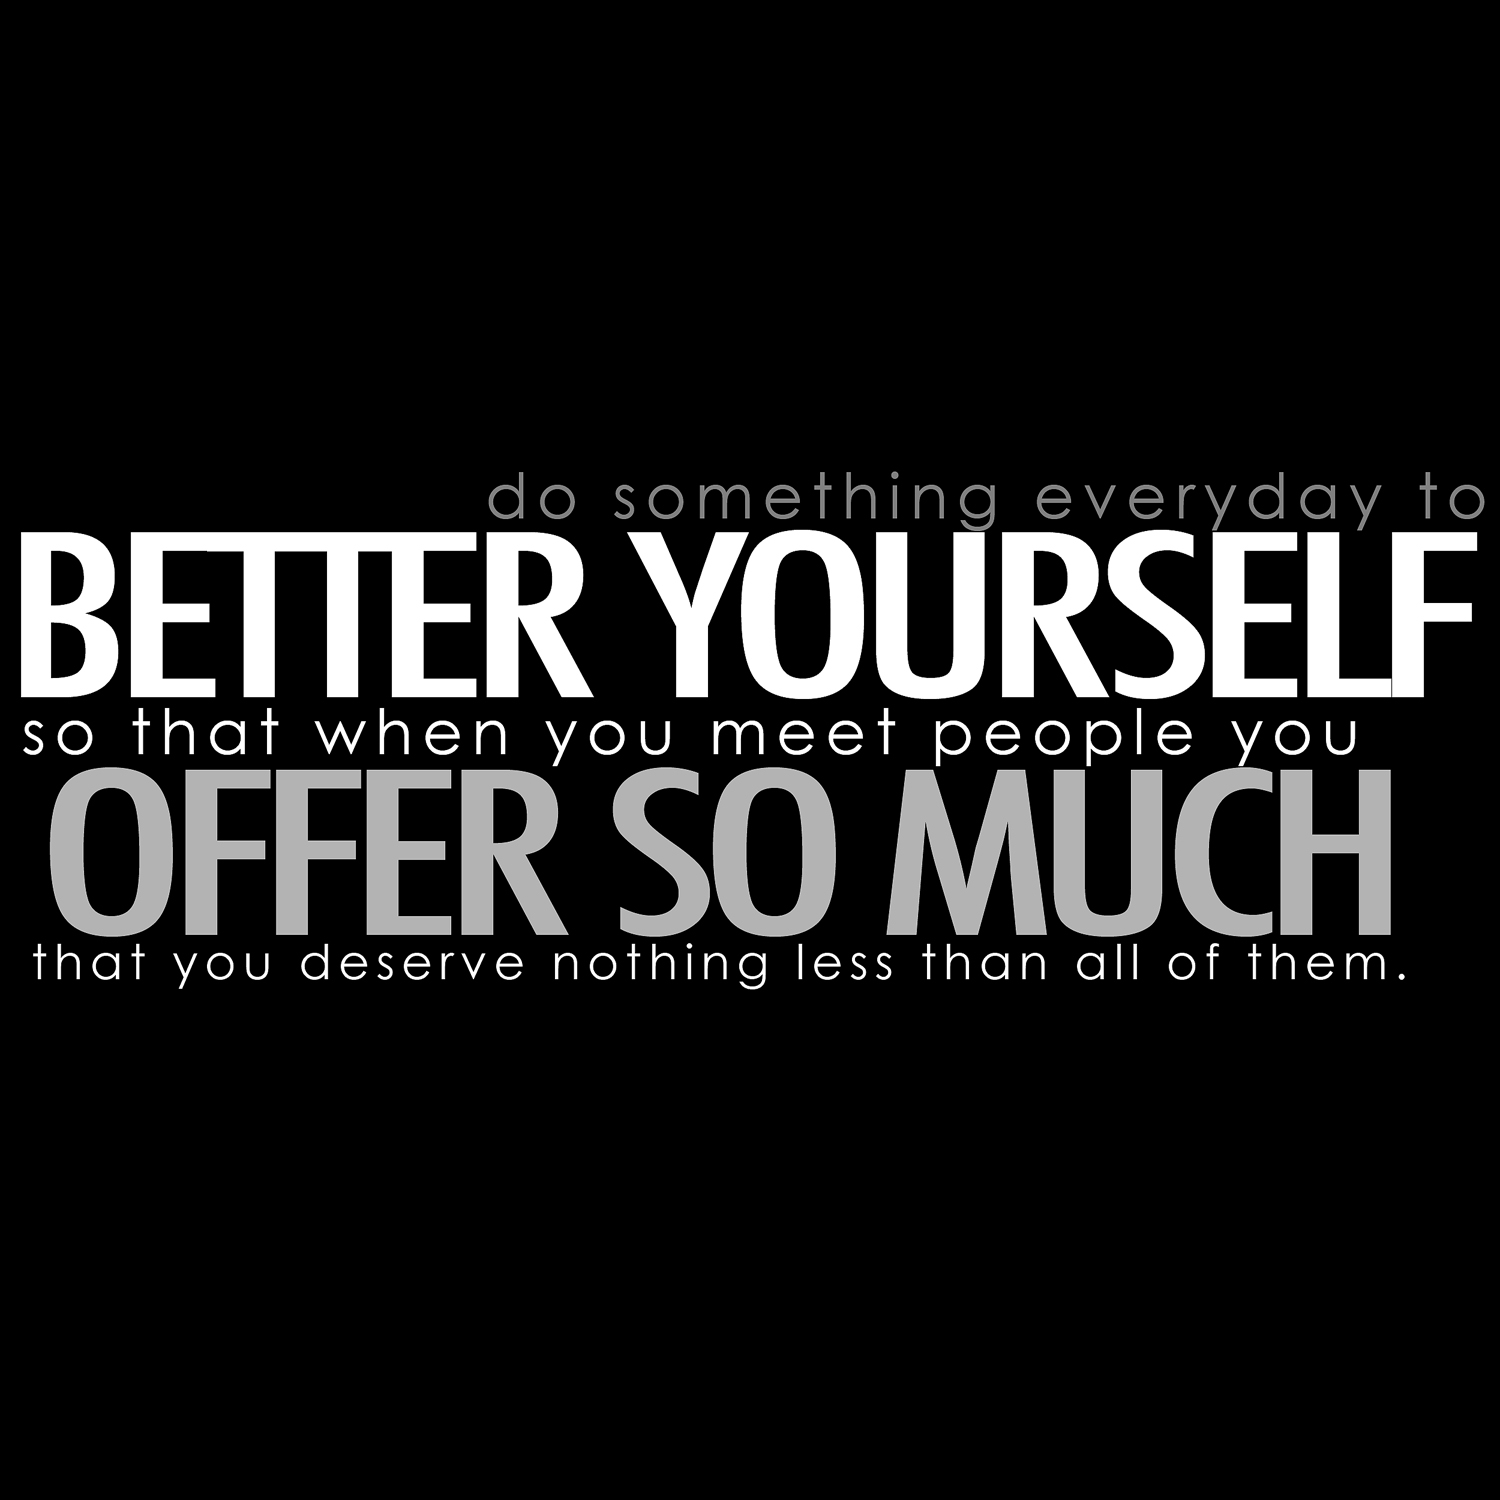 Inspirational Quotes About Improving Yourself Quotesgram: Inspirational Quotes About Bettering Yourself. QuotesGram